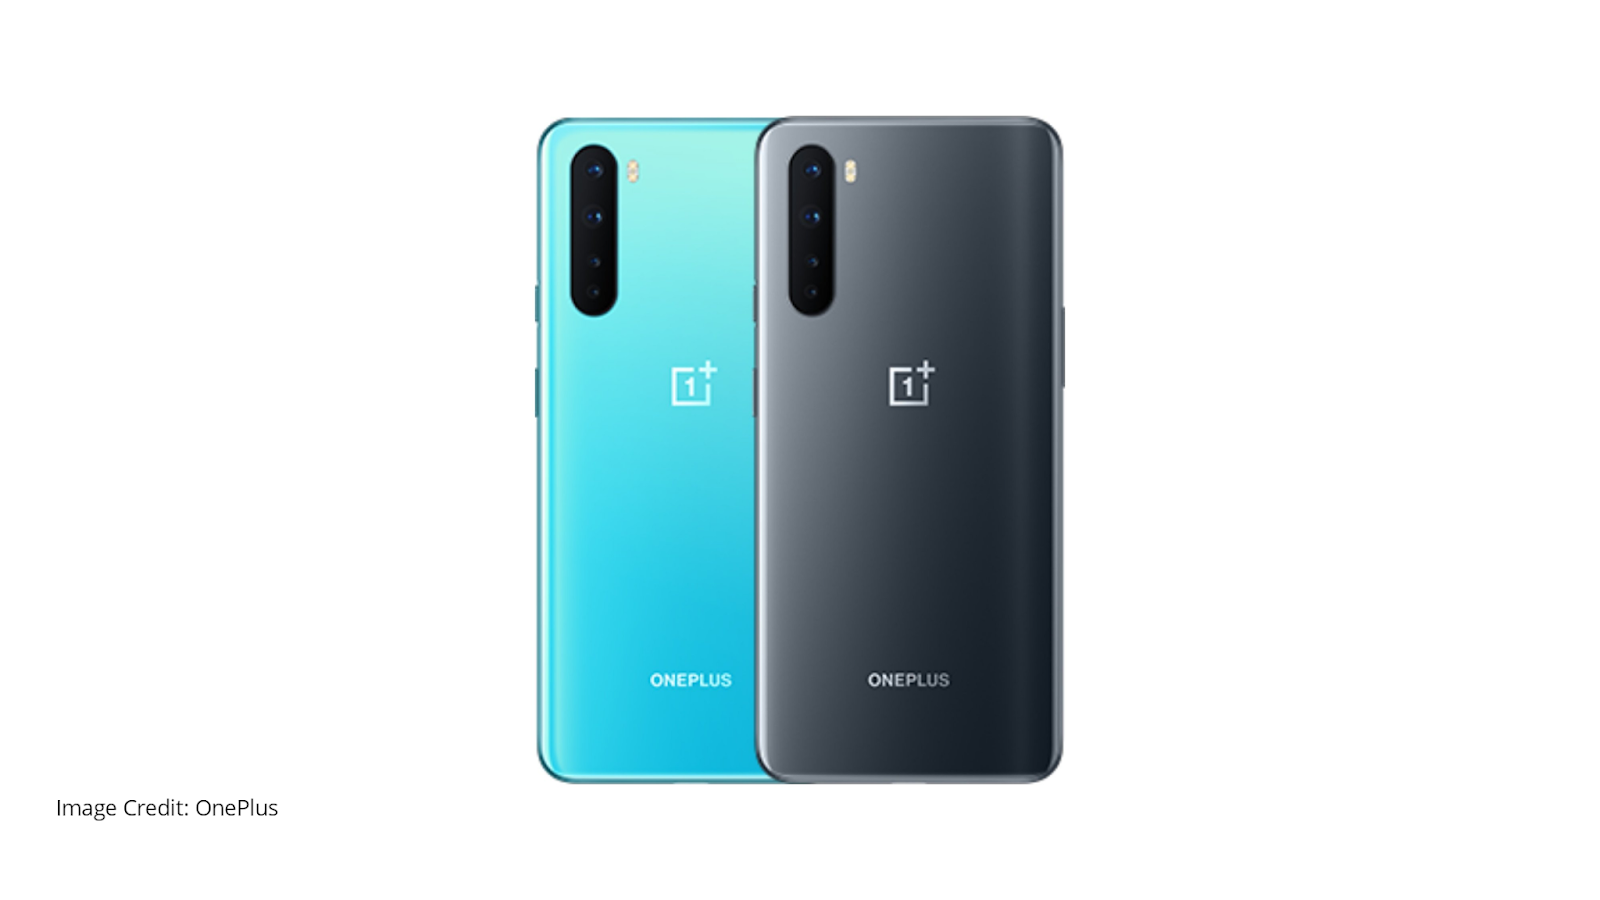 OnePlus Clover launch in US